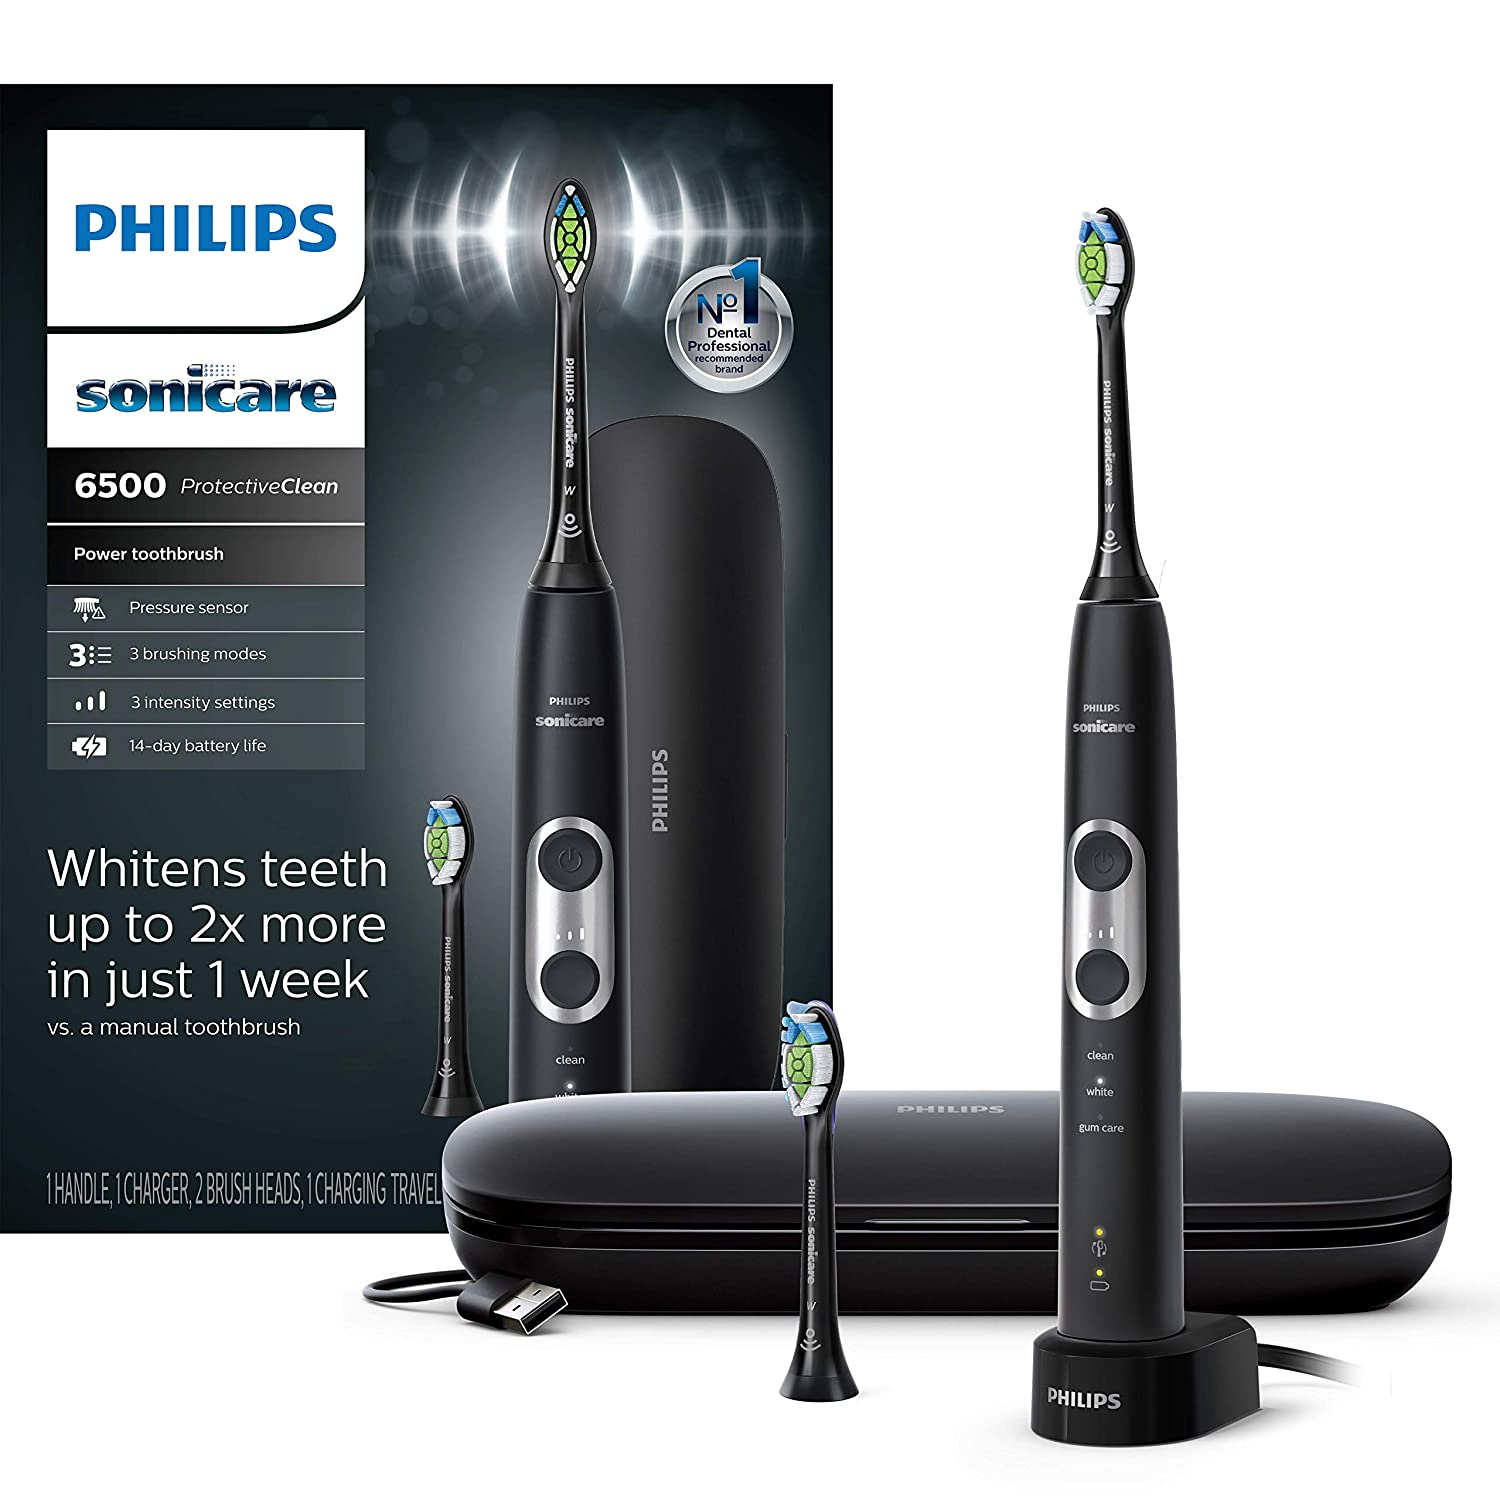 Philips Sonicare ProtectiveClean 6500 Electric Toothbrush